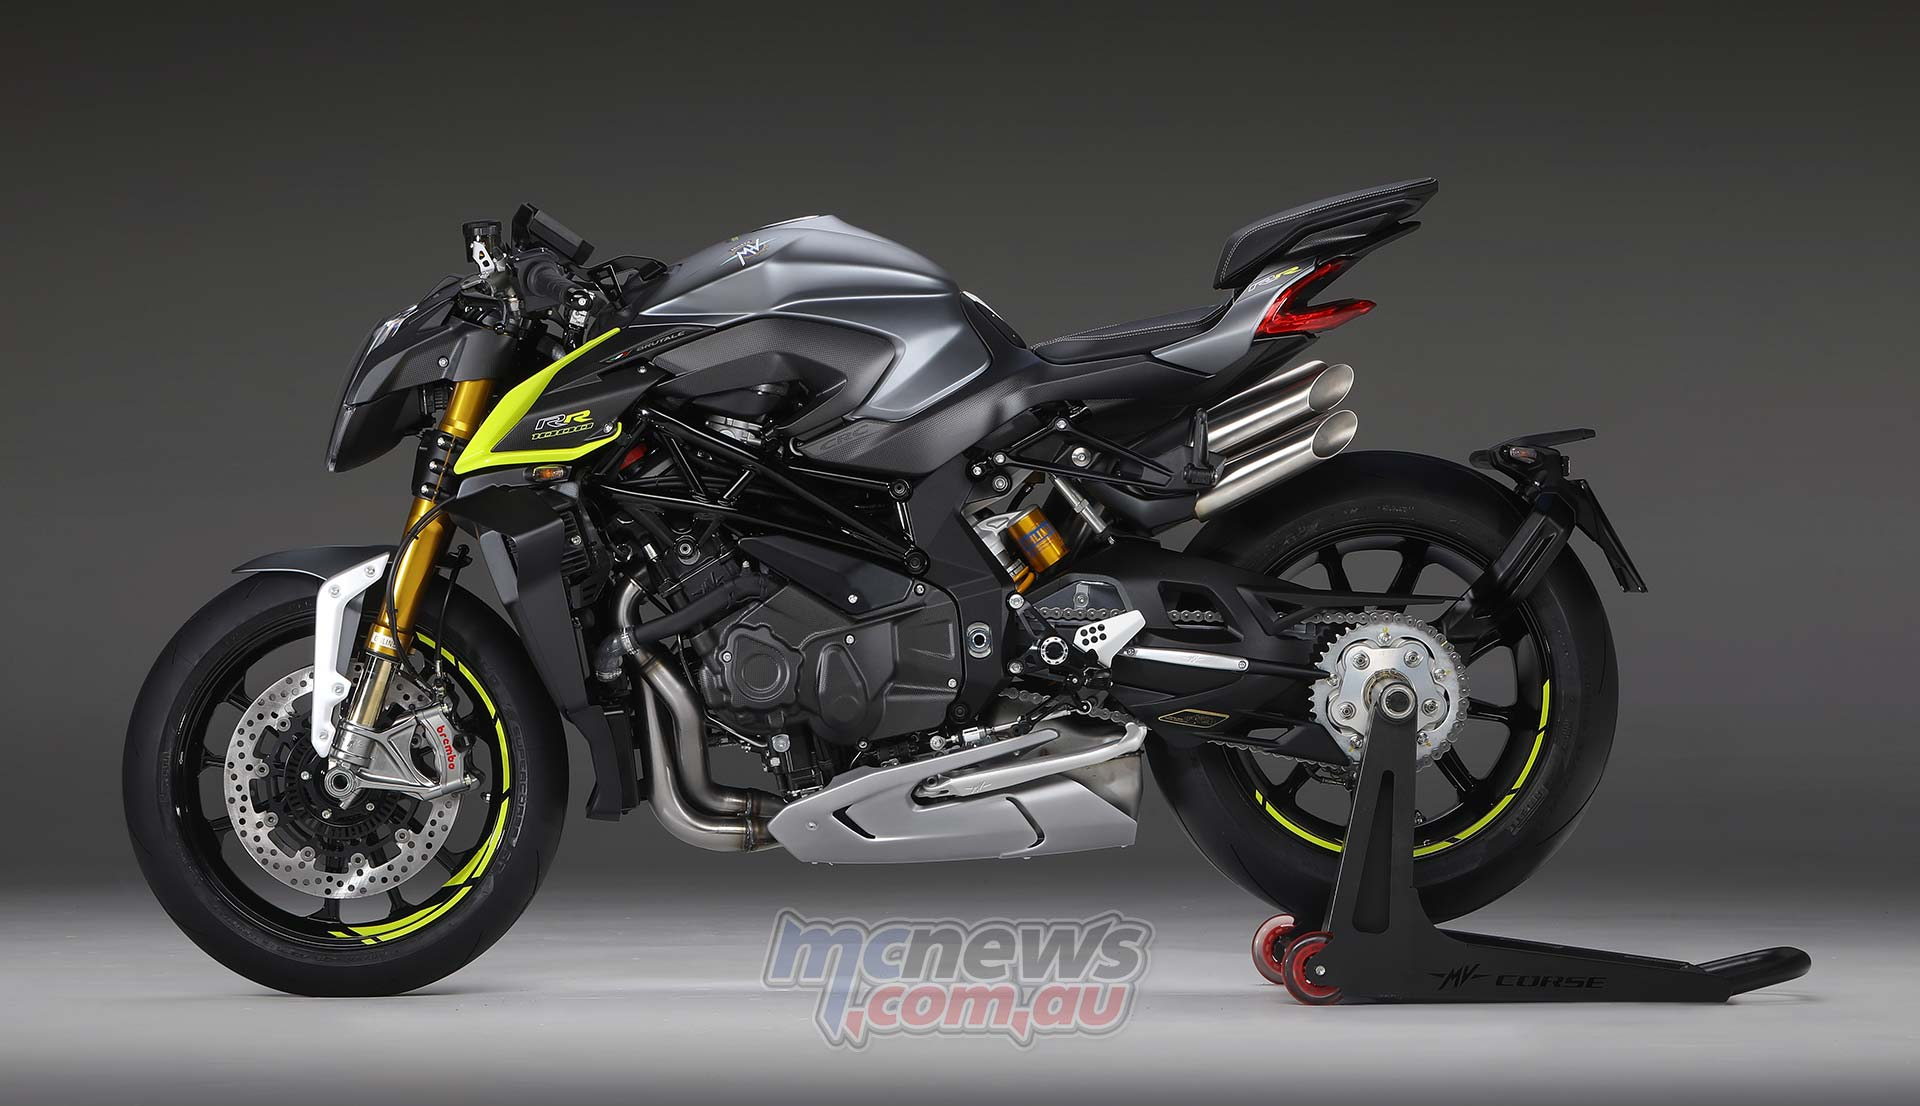 MV Agusta Brutale 1000 RR is available in two different colour schemes